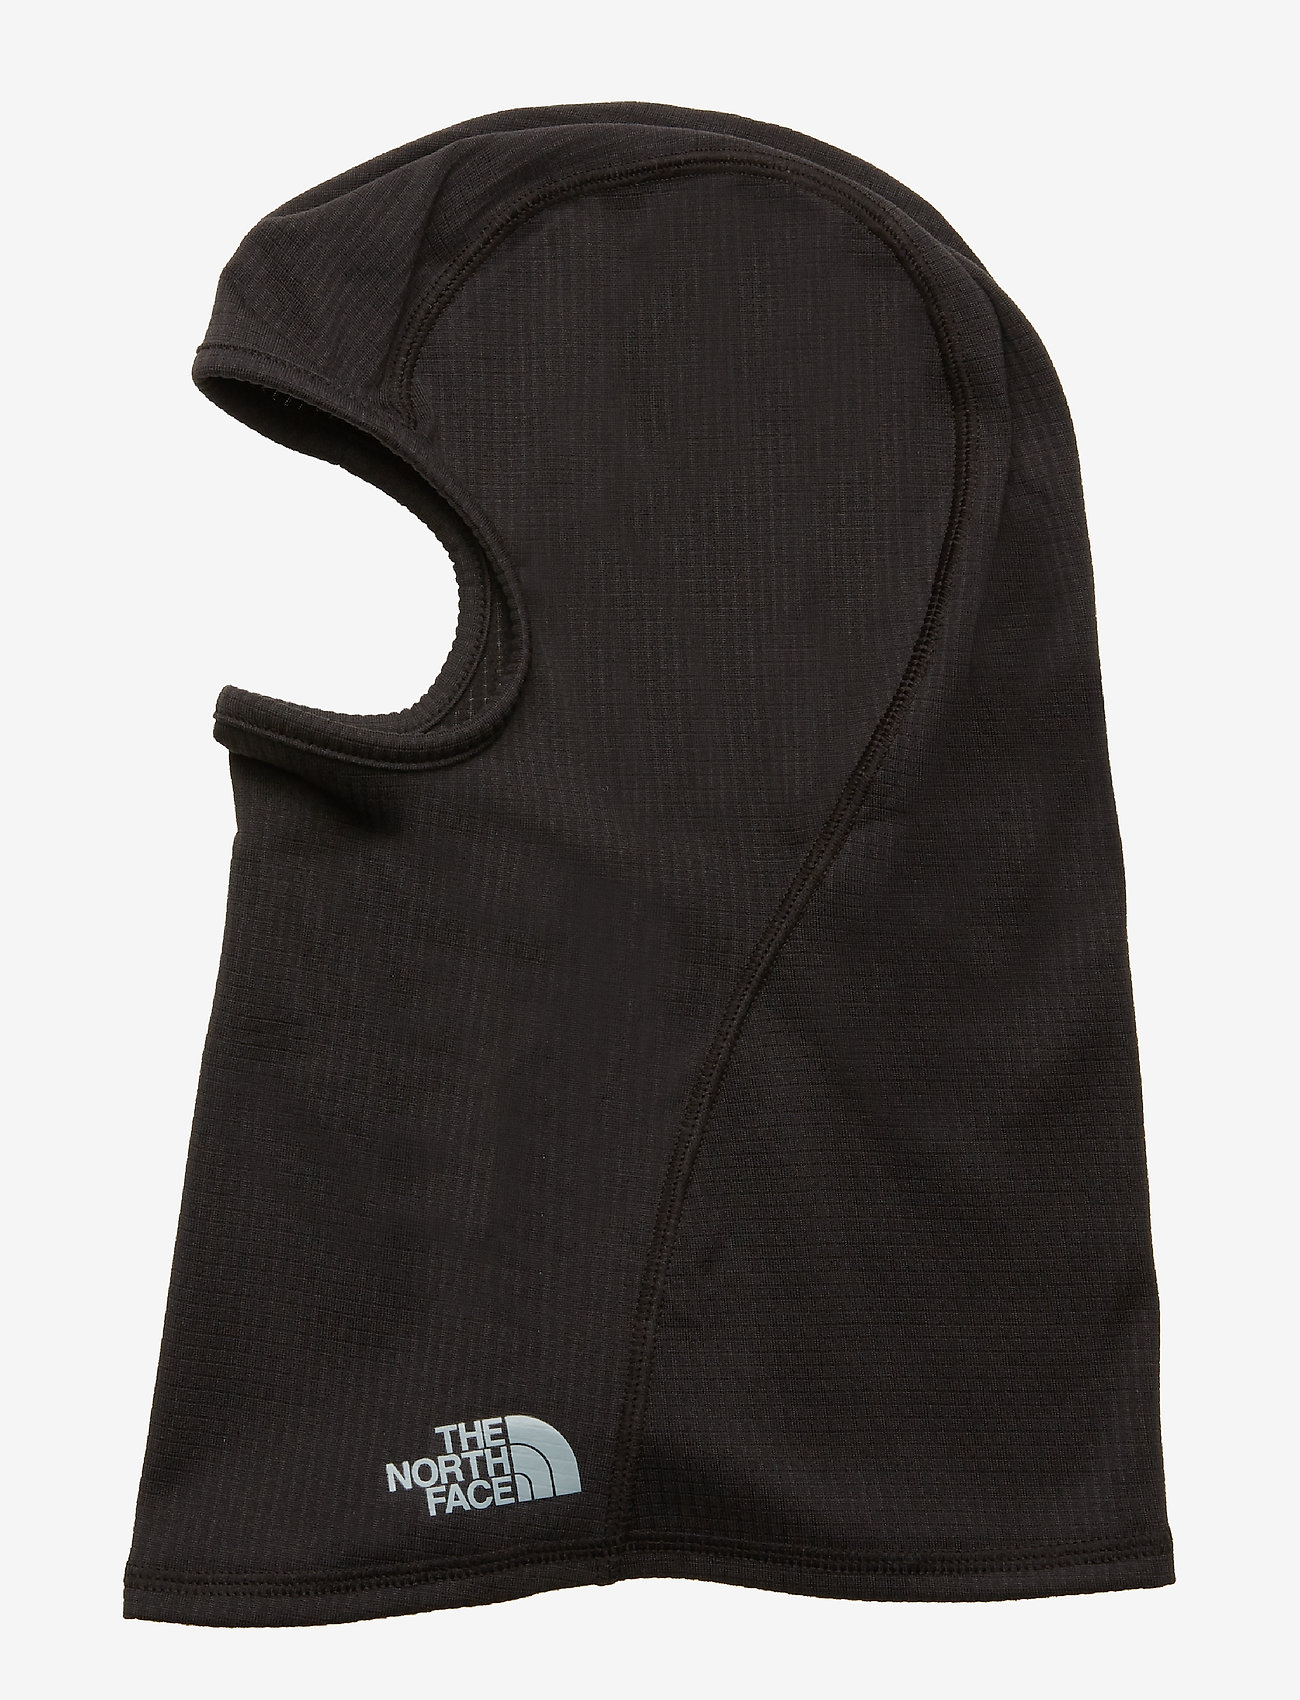 The North Face - PATROL BALACLAVA - hoeden - tnf black - 1